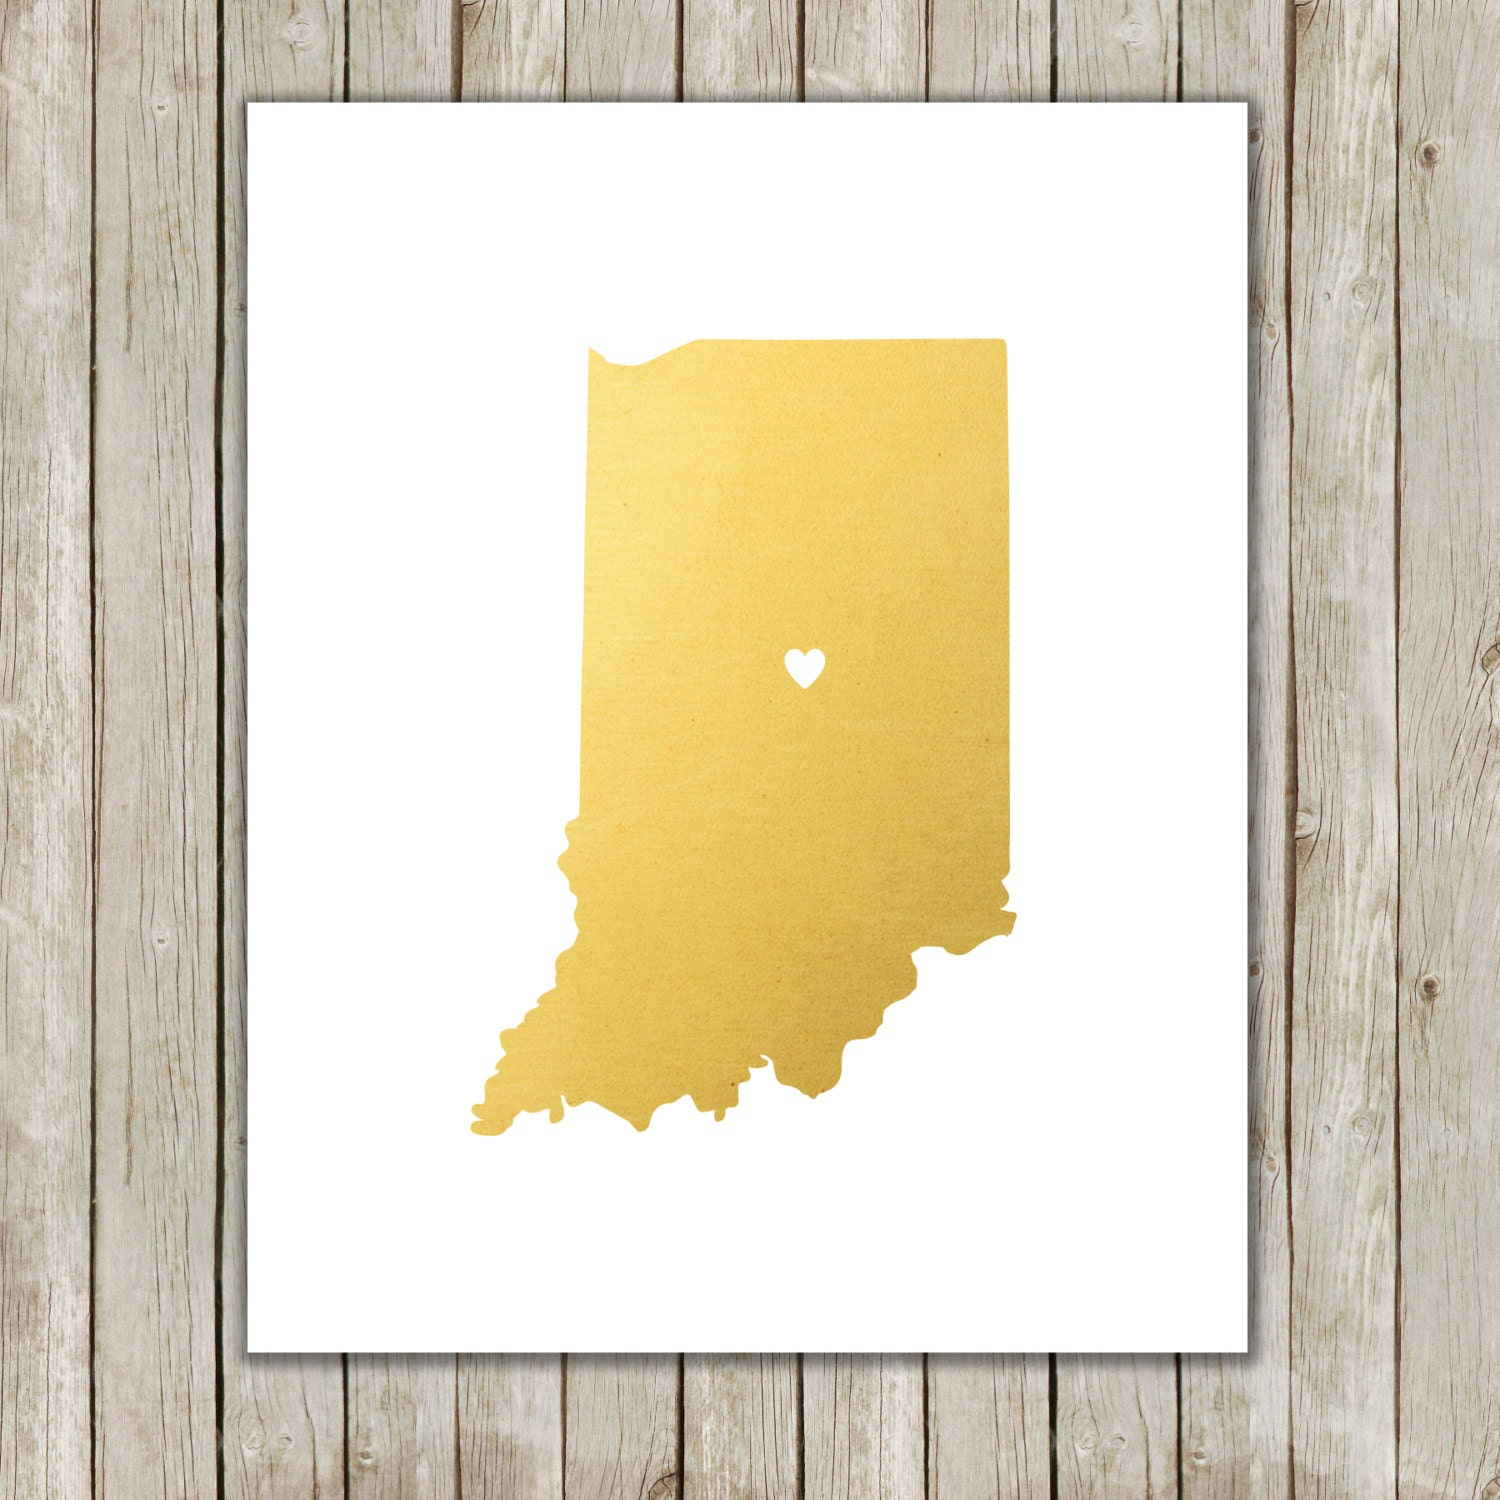 8x10 Indiana State Print Geography Wall Art Metallic Gold | Etsy